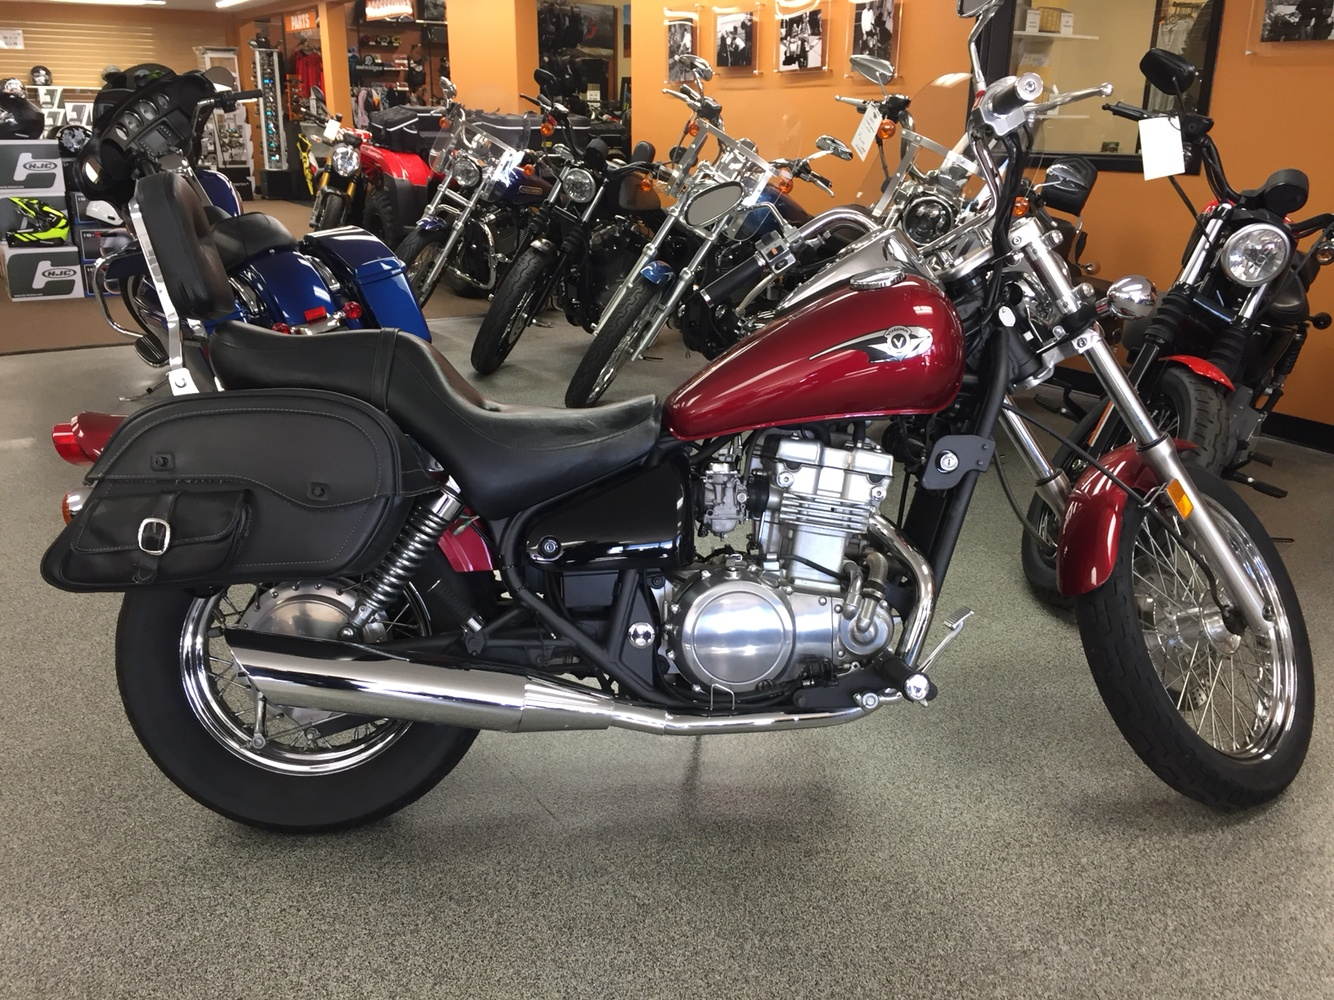 2009 Kawasaki Vulcan® 500 LTD in Aurora, Colorado